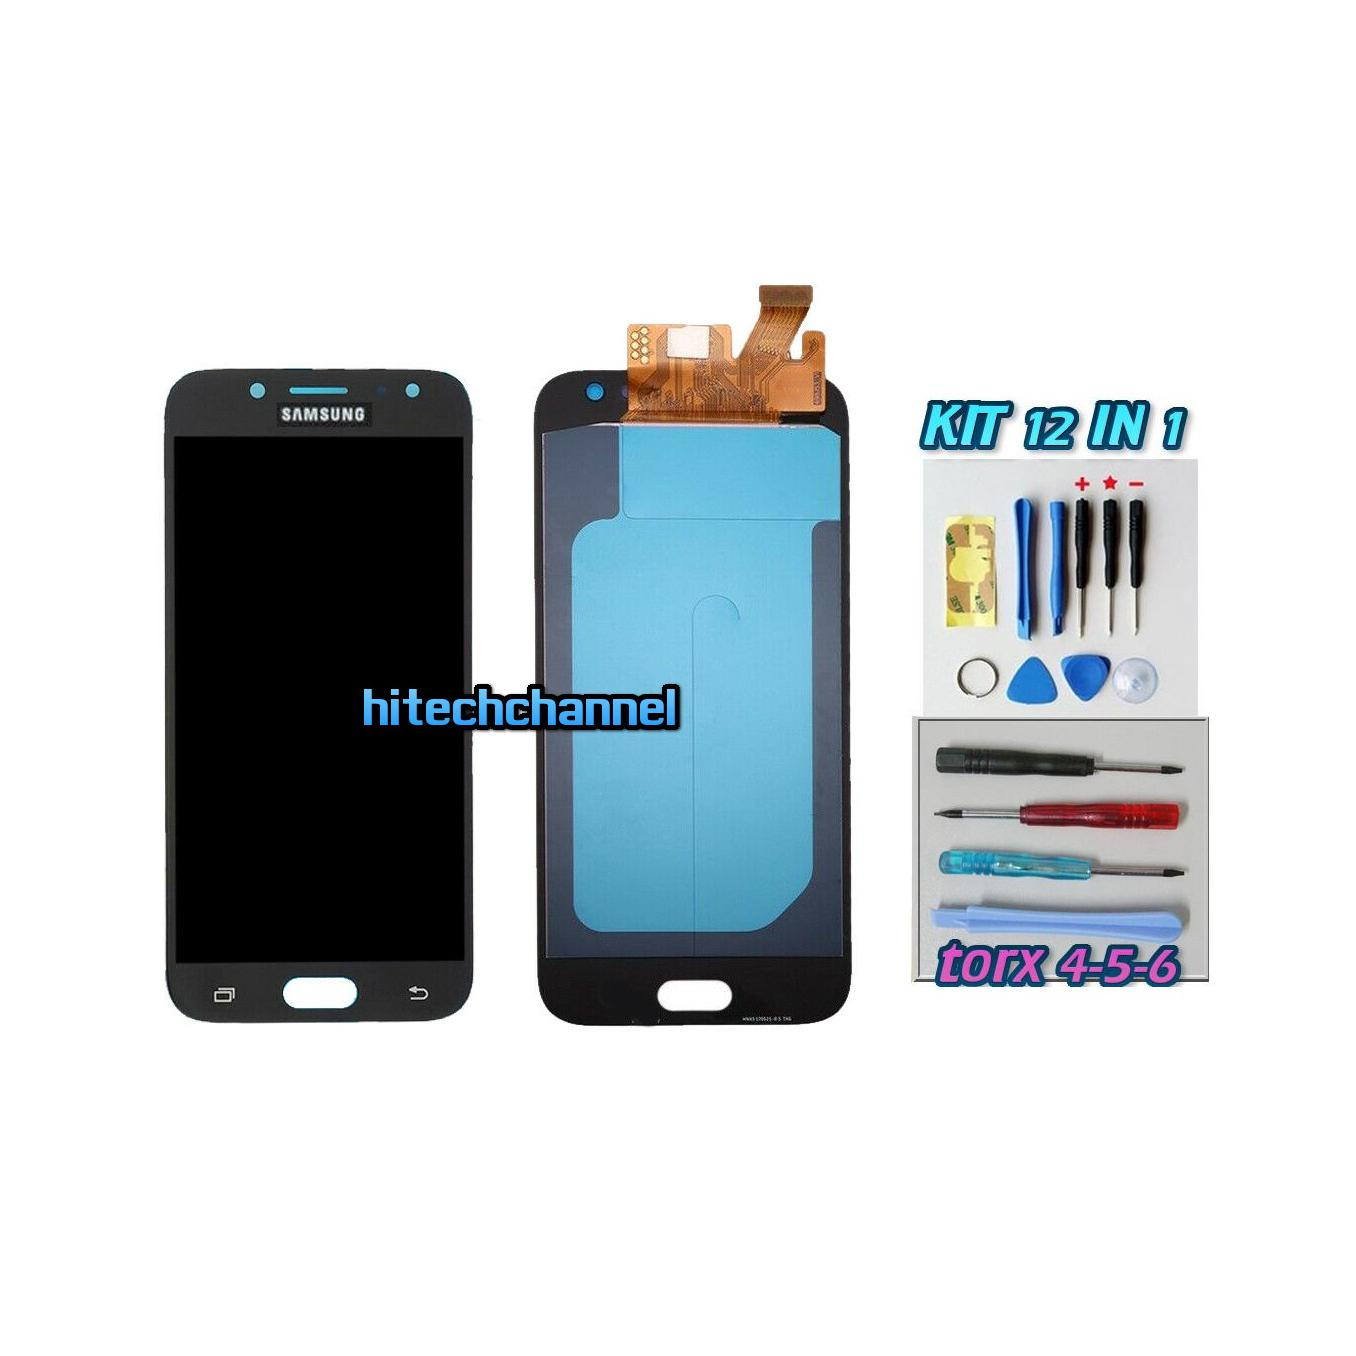 TOUCH SCREEN LCD DISPLAY NERO Samsung Galaxy J5 2017 J530F+ kit 9 in 1 biadesivo e colla b7000